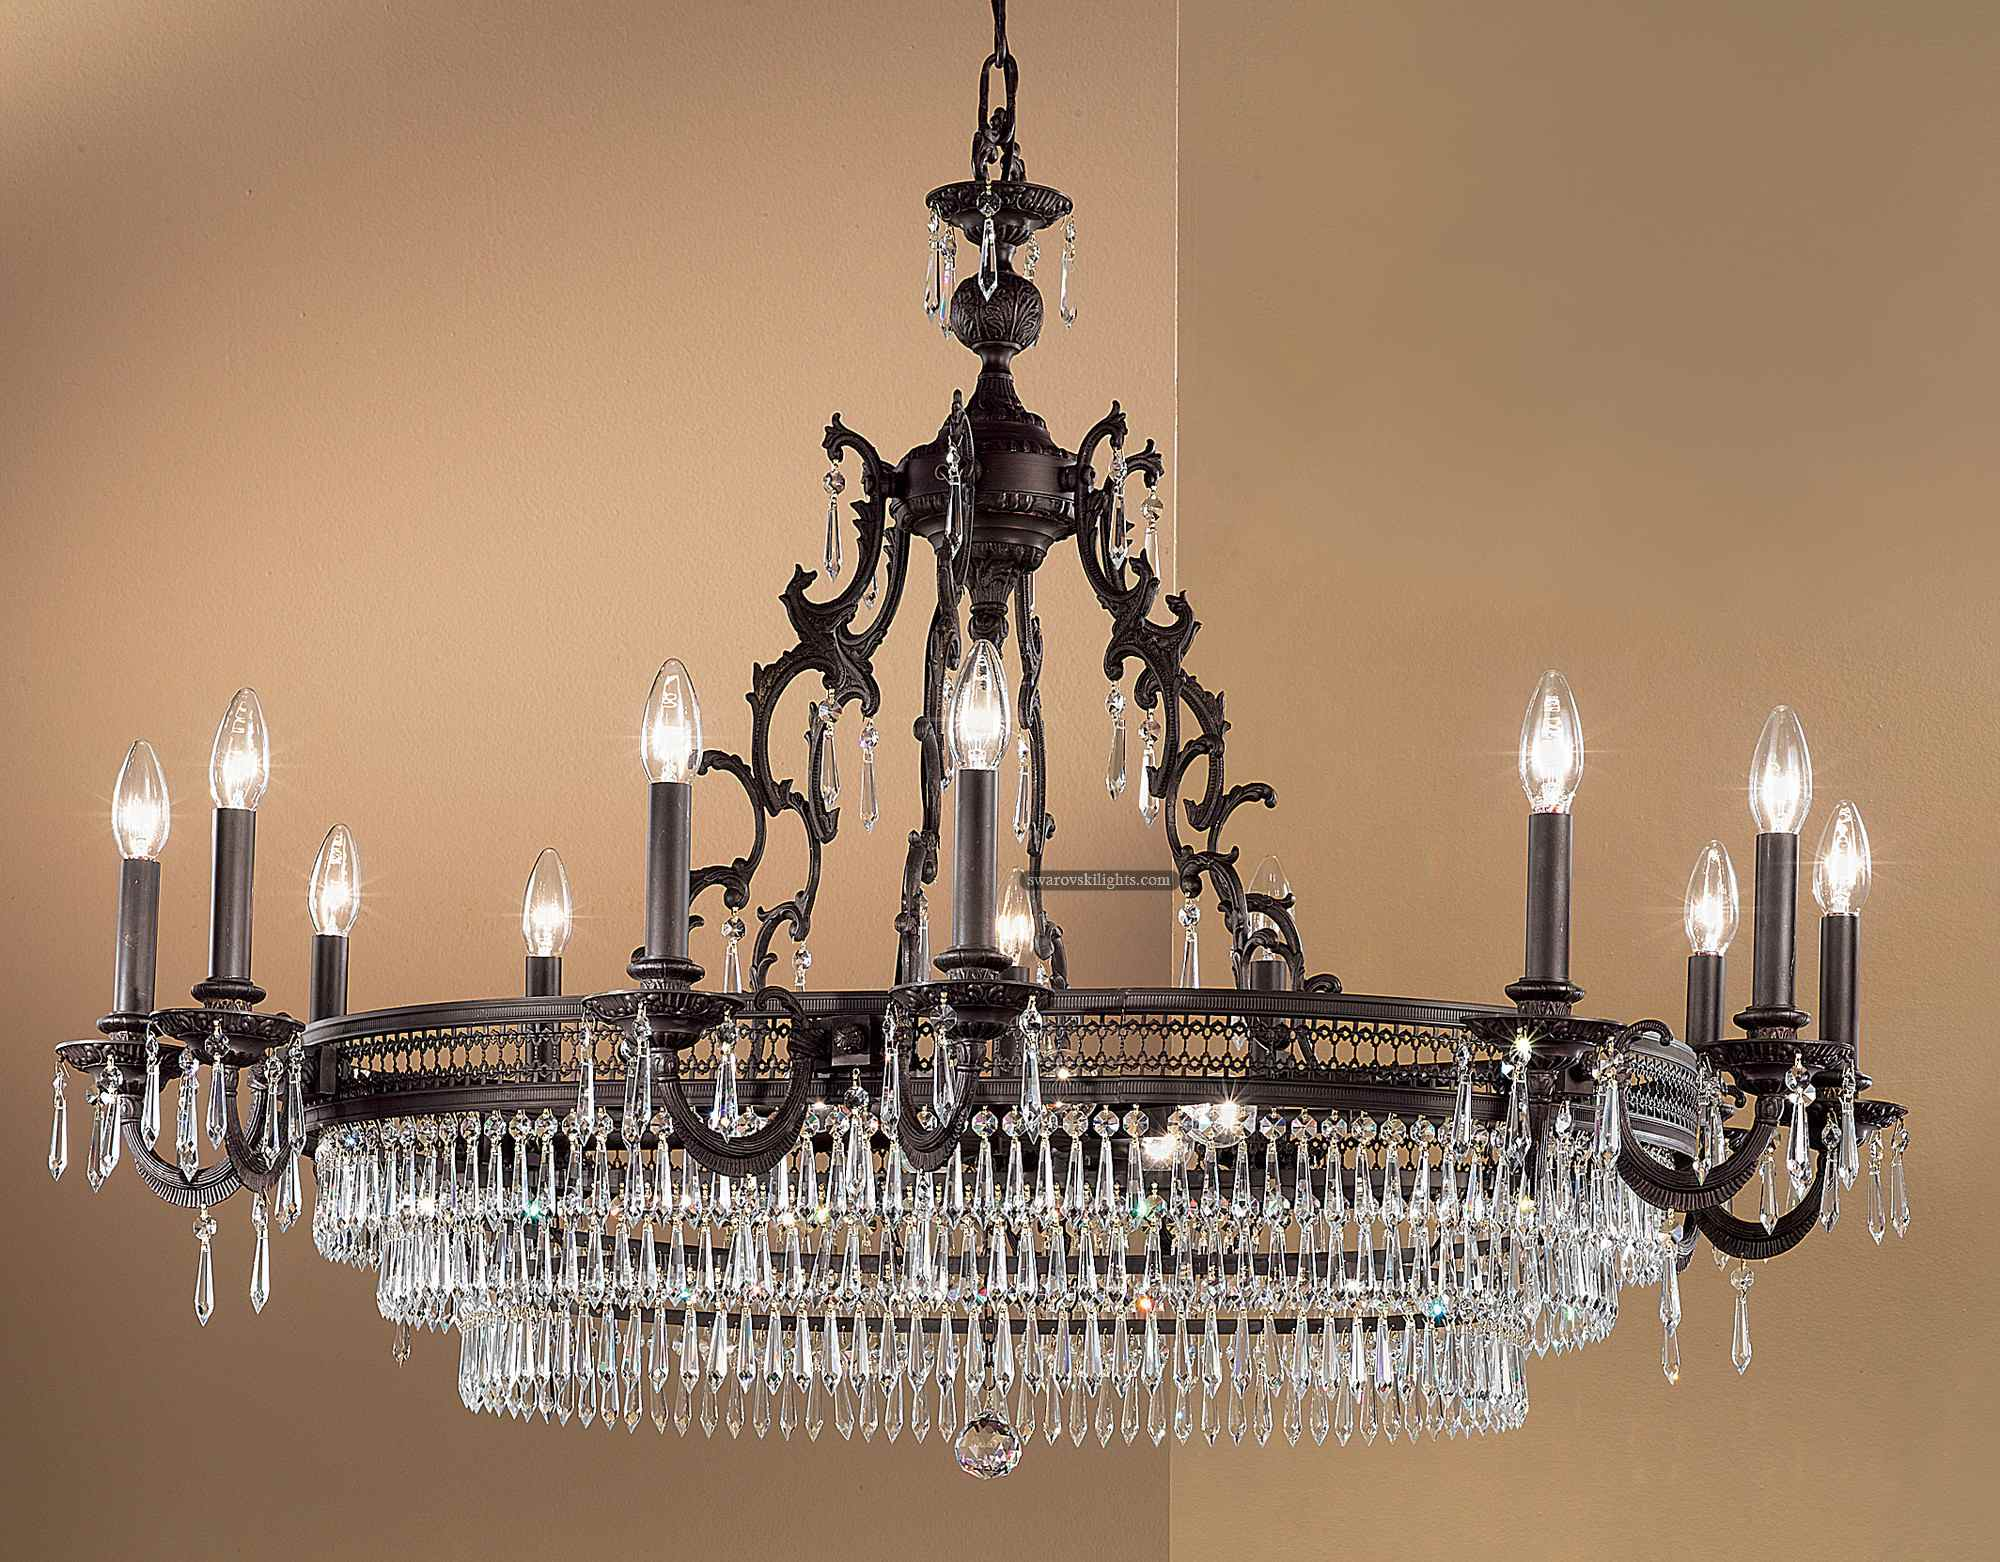 dibs furniture lighting id chandelier lights condition chandeliers angeles wrought for sale l los good italian in gold crystal f at and iron pendant